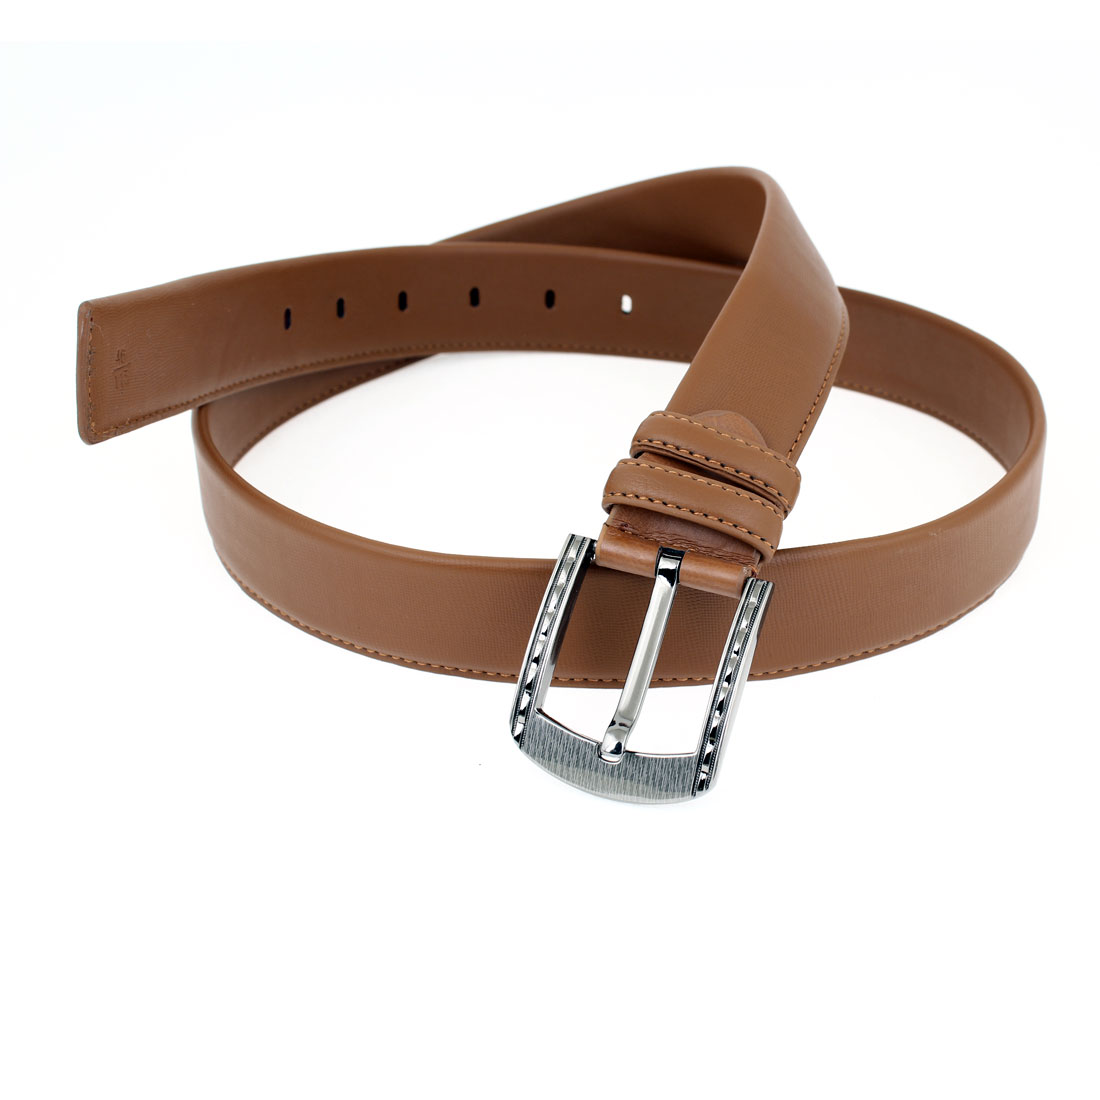 Faux Leather 6 Holes One Pin Buckle Adjustable Waist Belt Brown for Men